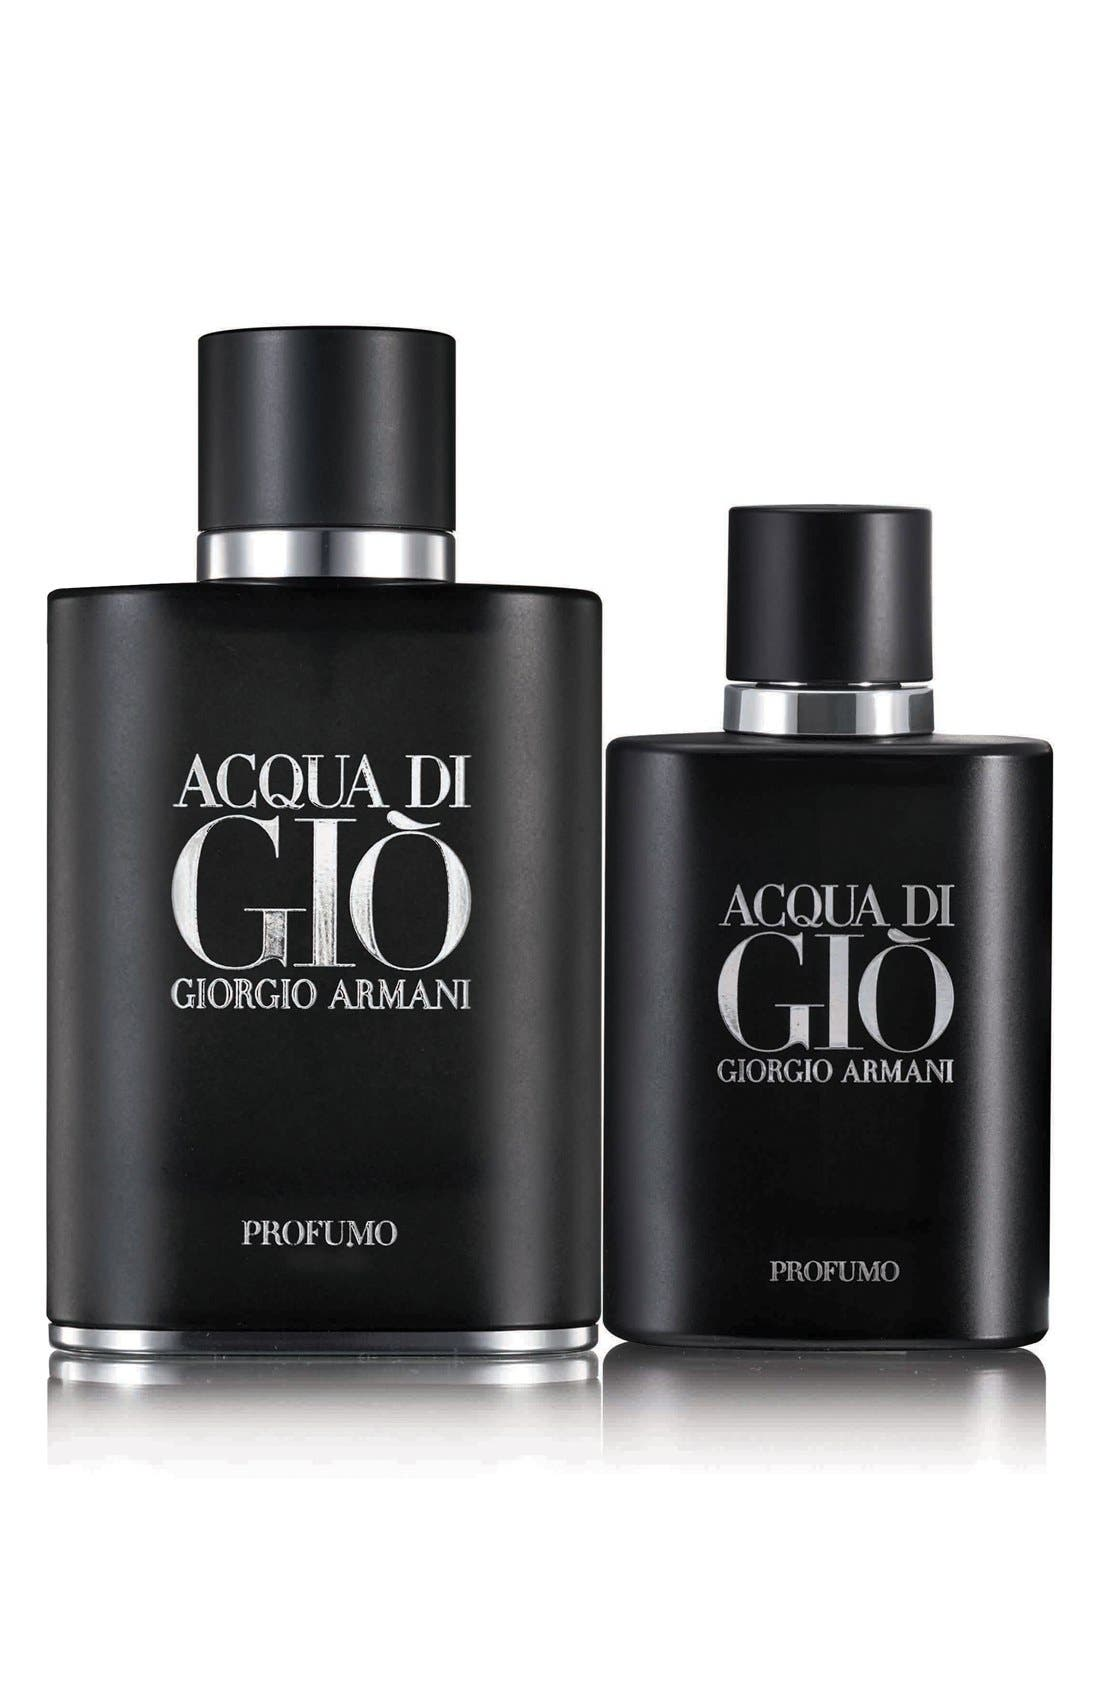 Giorgio Armani Acqua di Giò Profumo Eau de Parfum Duo (Limited Edition) ($165 Value)